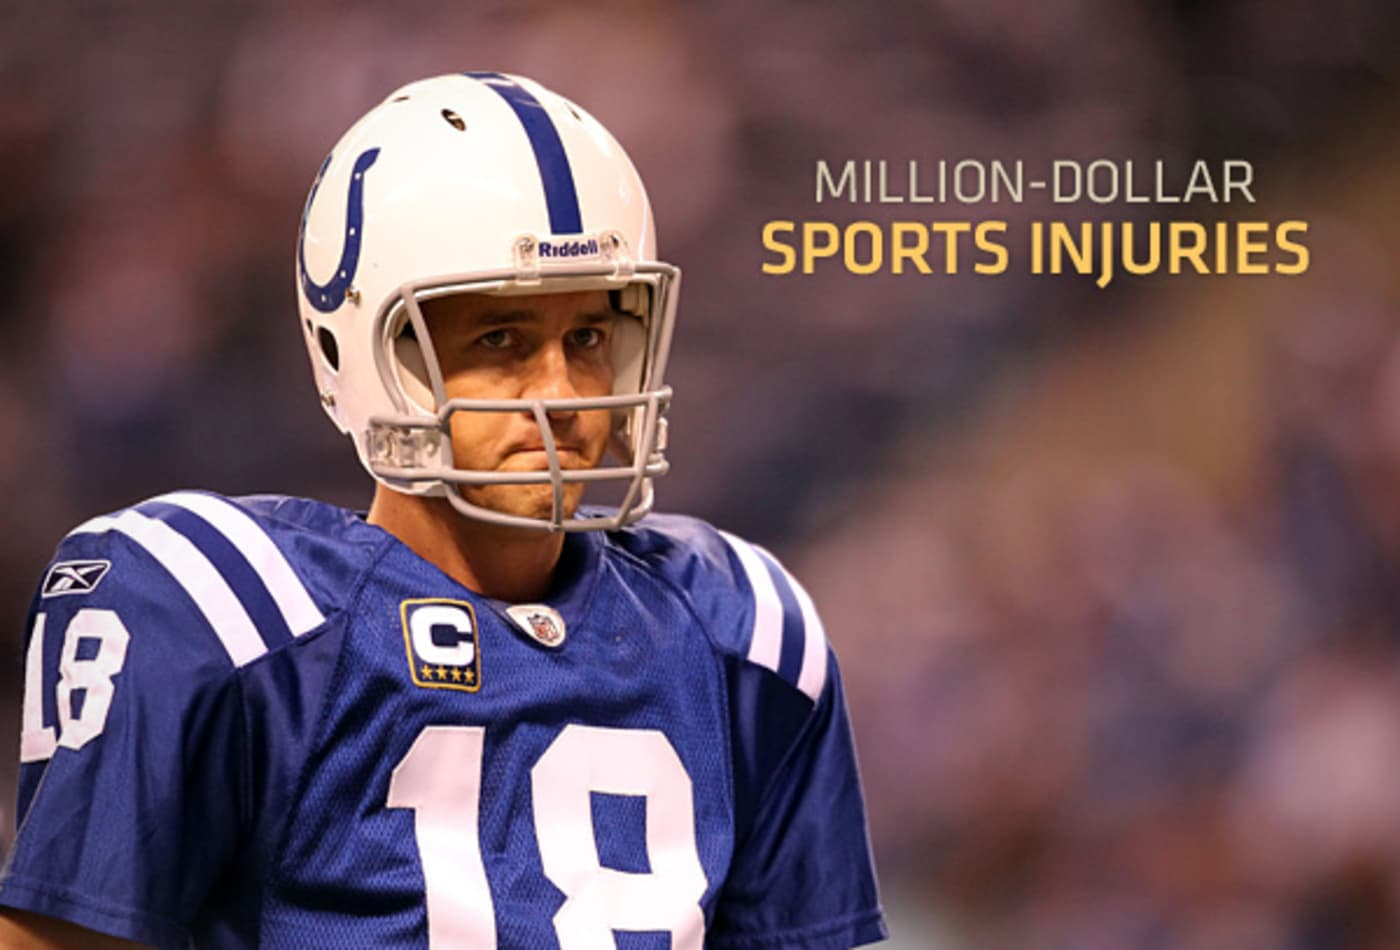 Sports-Injuries-Cost-Millions-Cover-Manning-Peyton.jpg